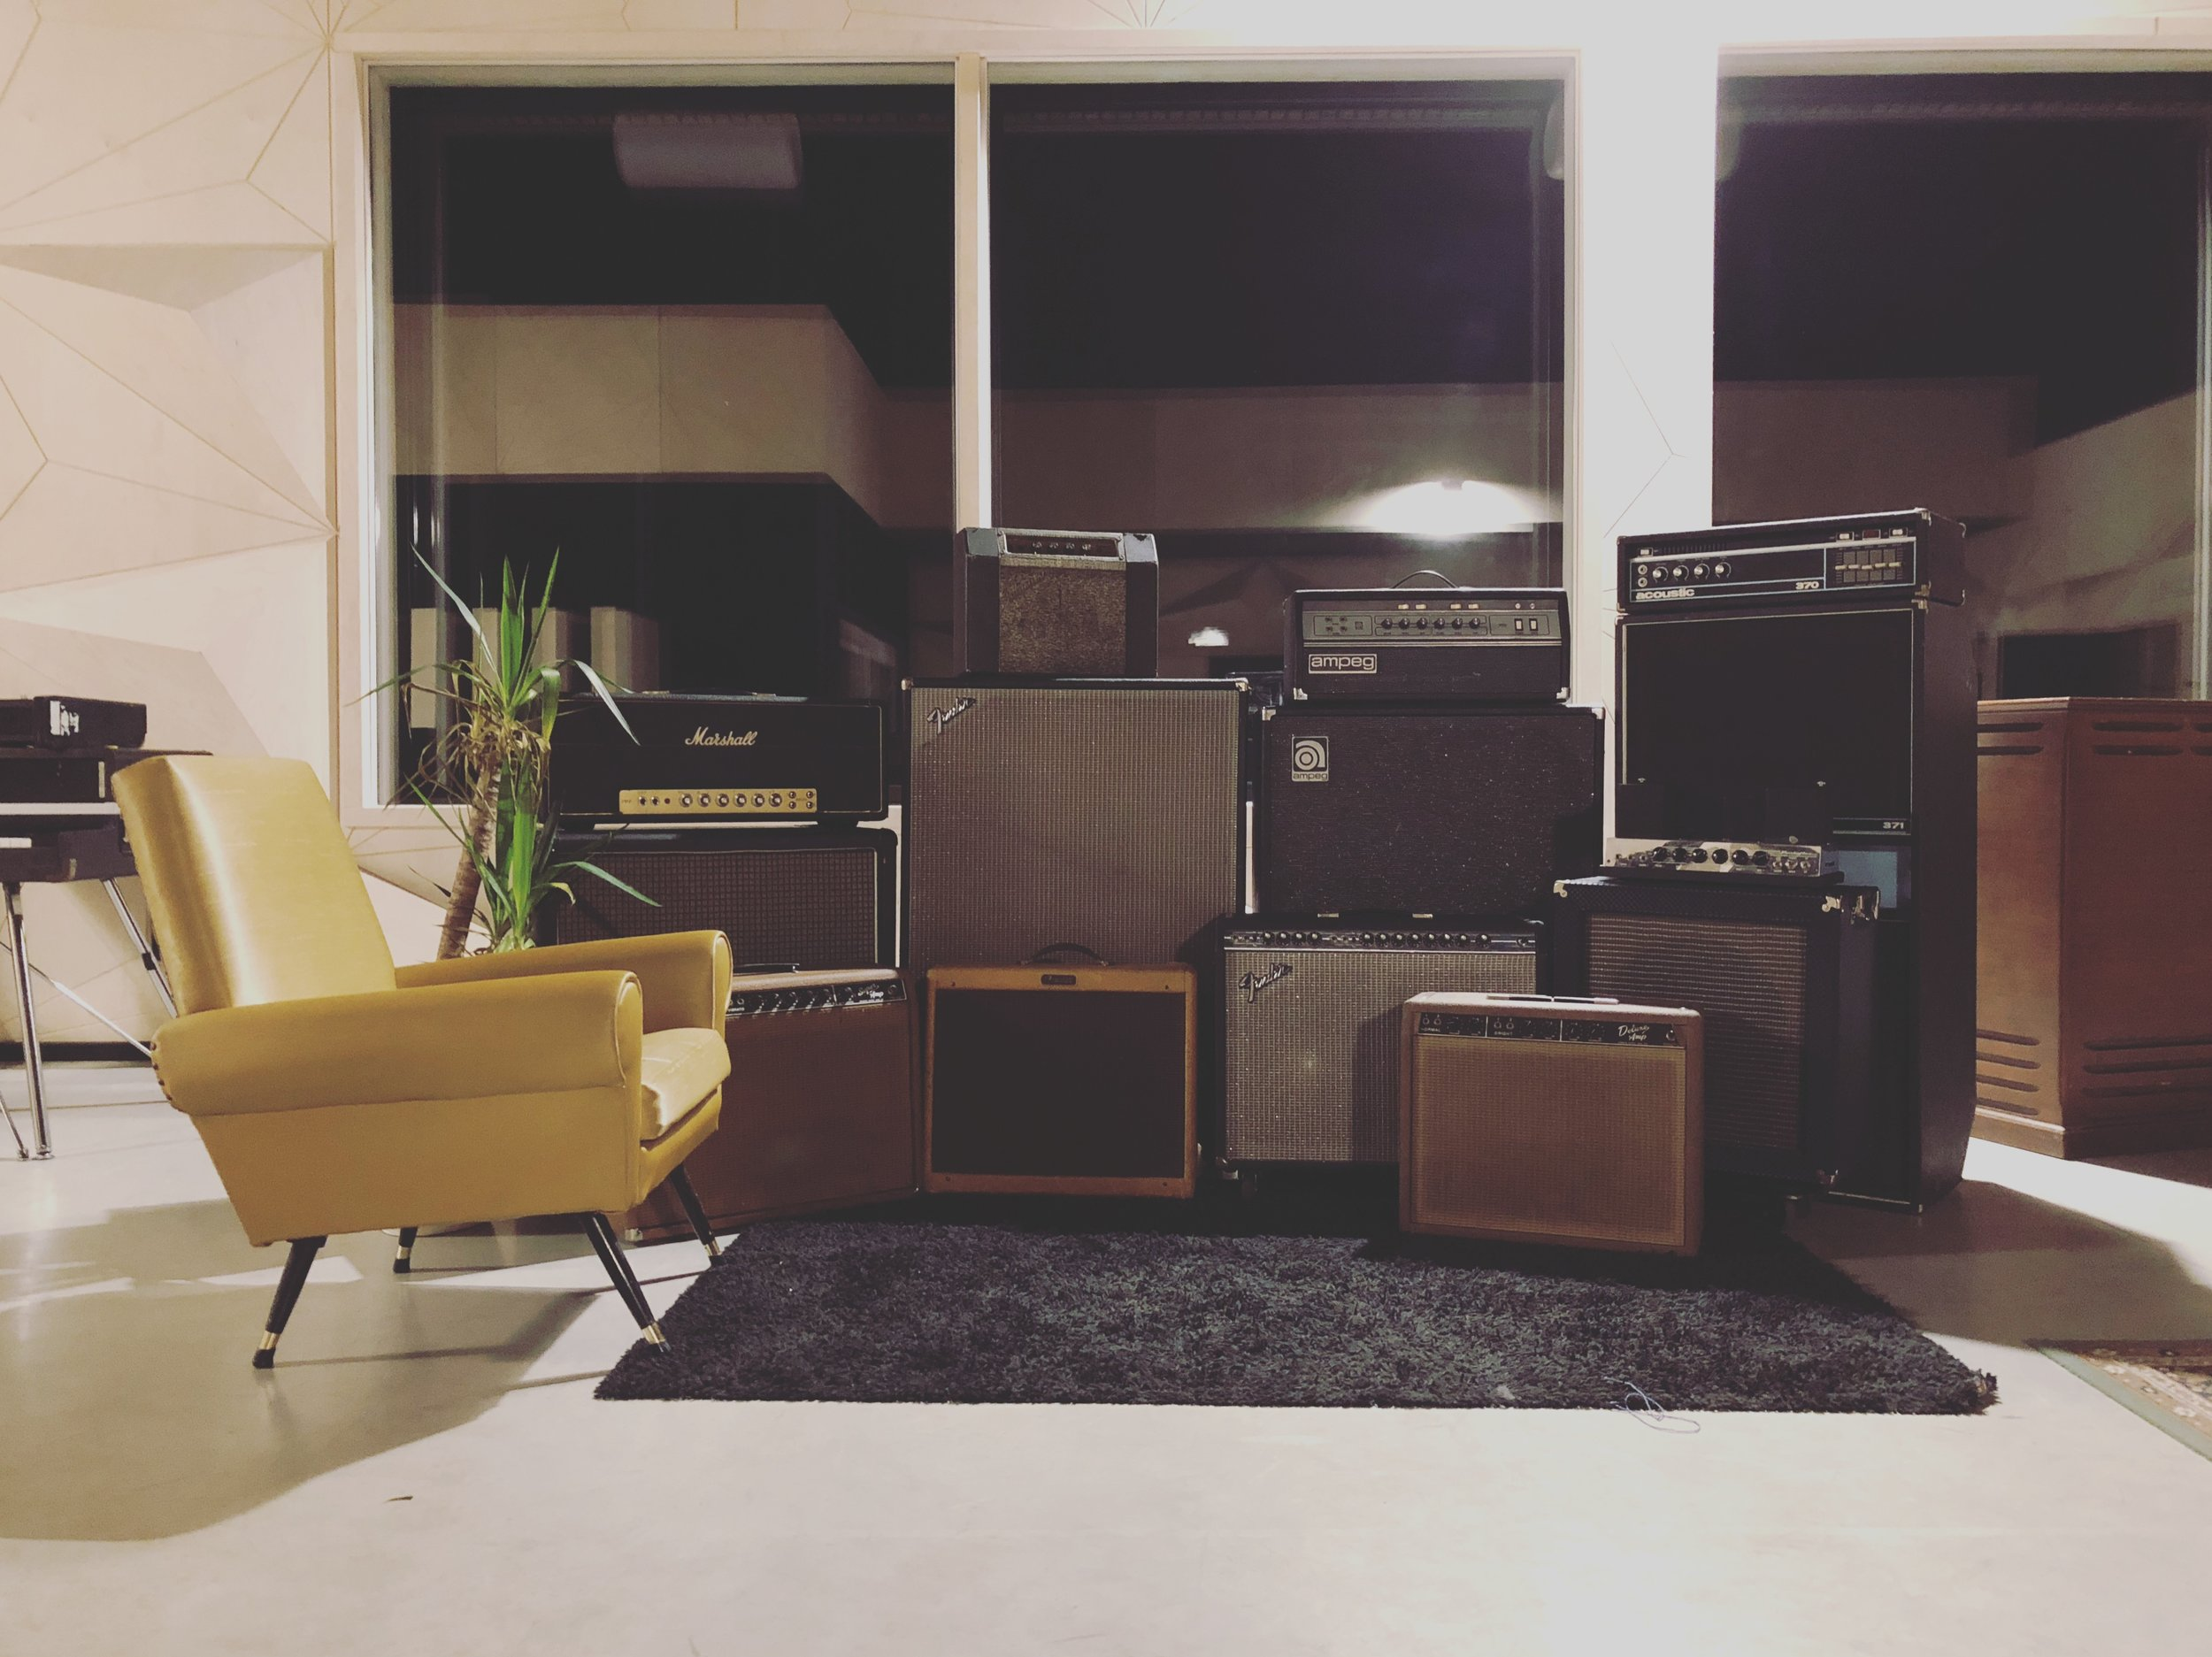 The wall of sound.